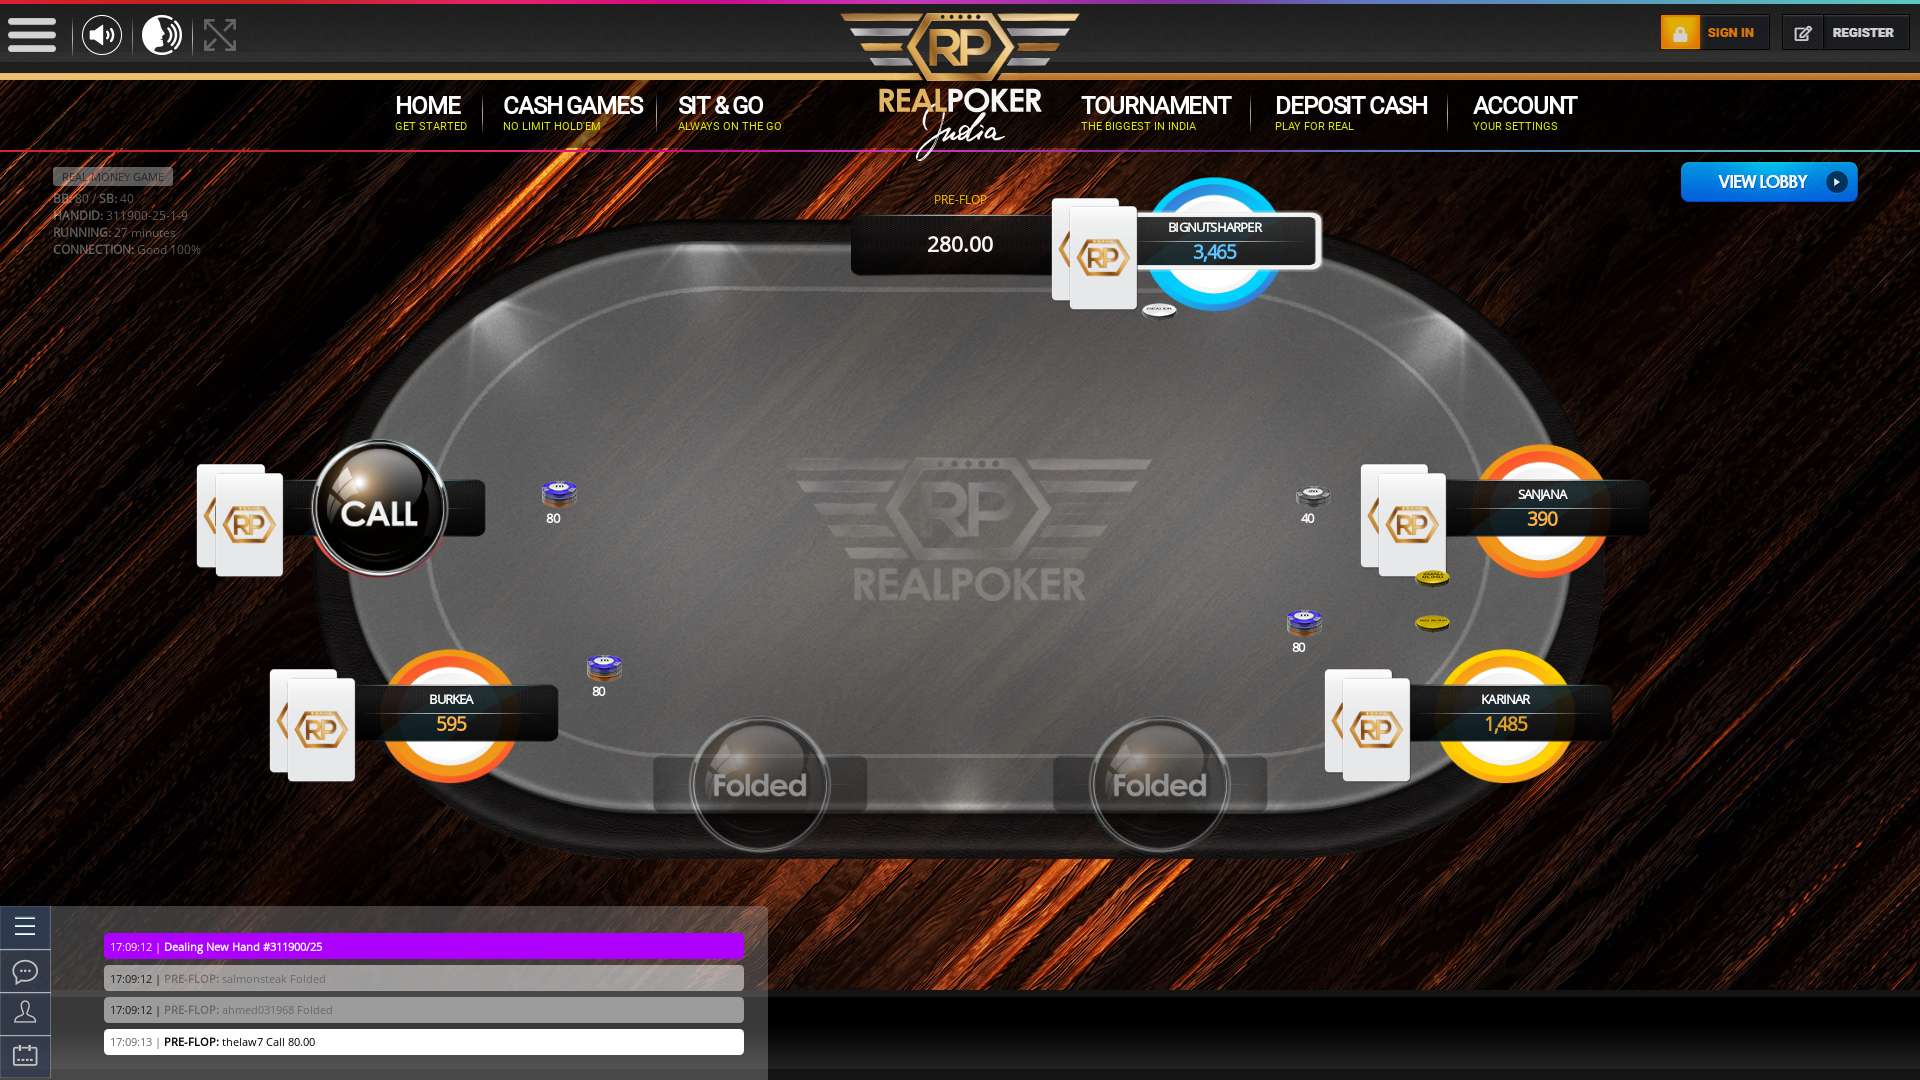 Online poker on a 10 player table in the 26th minute match up